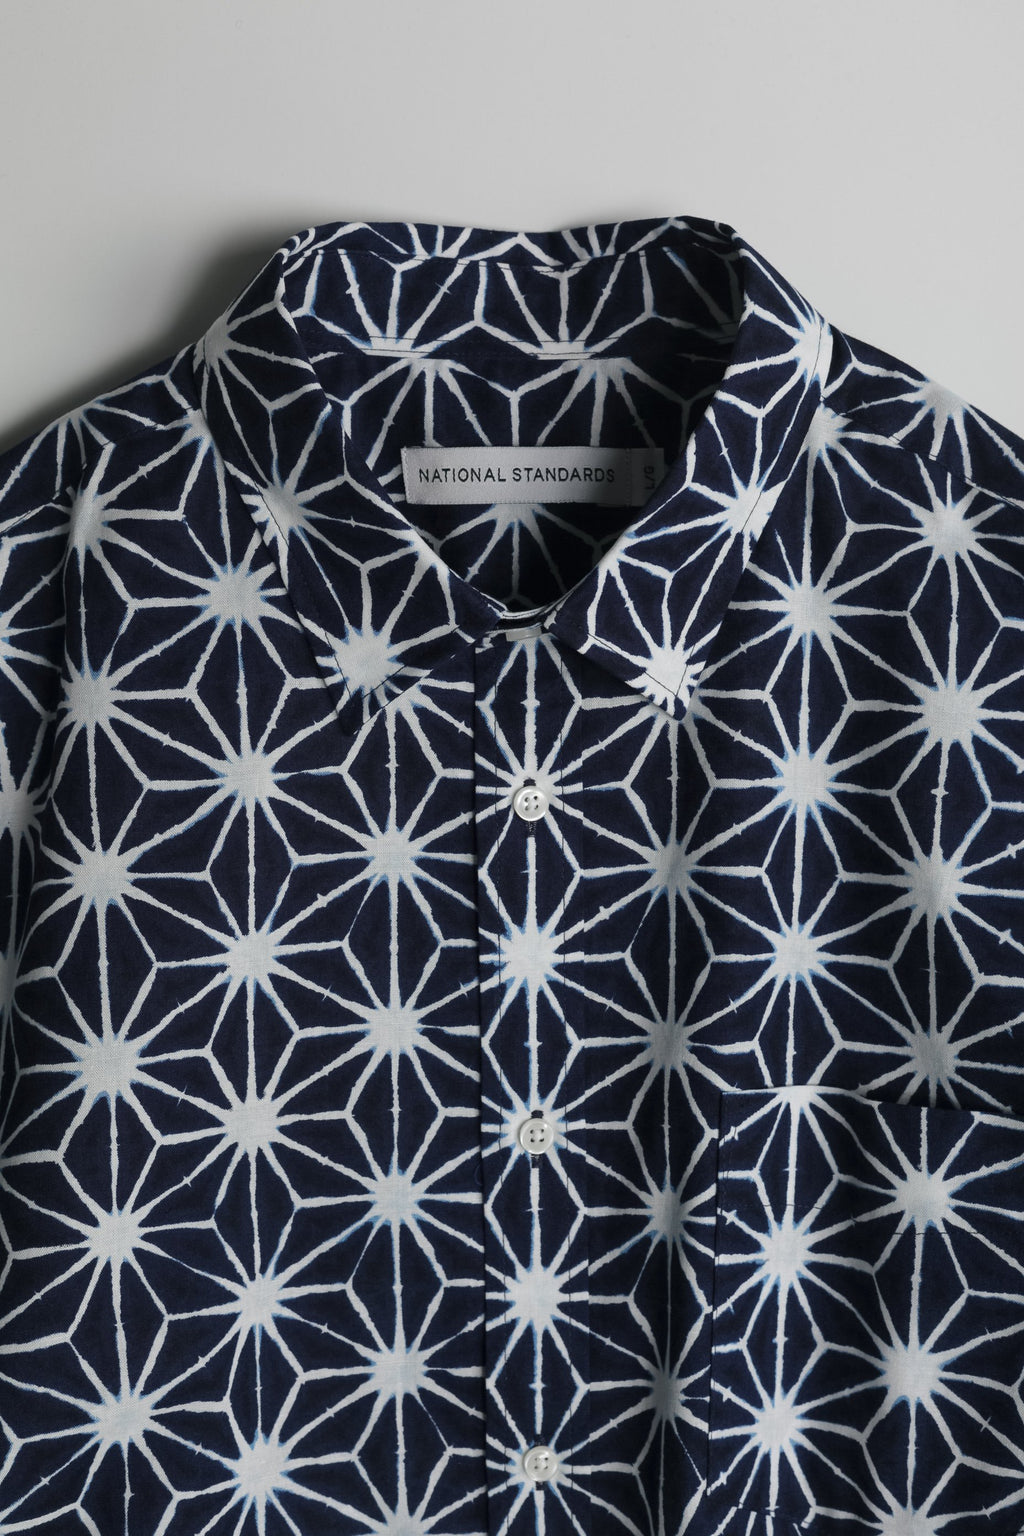 japanese-asanoha-print-in-navy-and-white 02